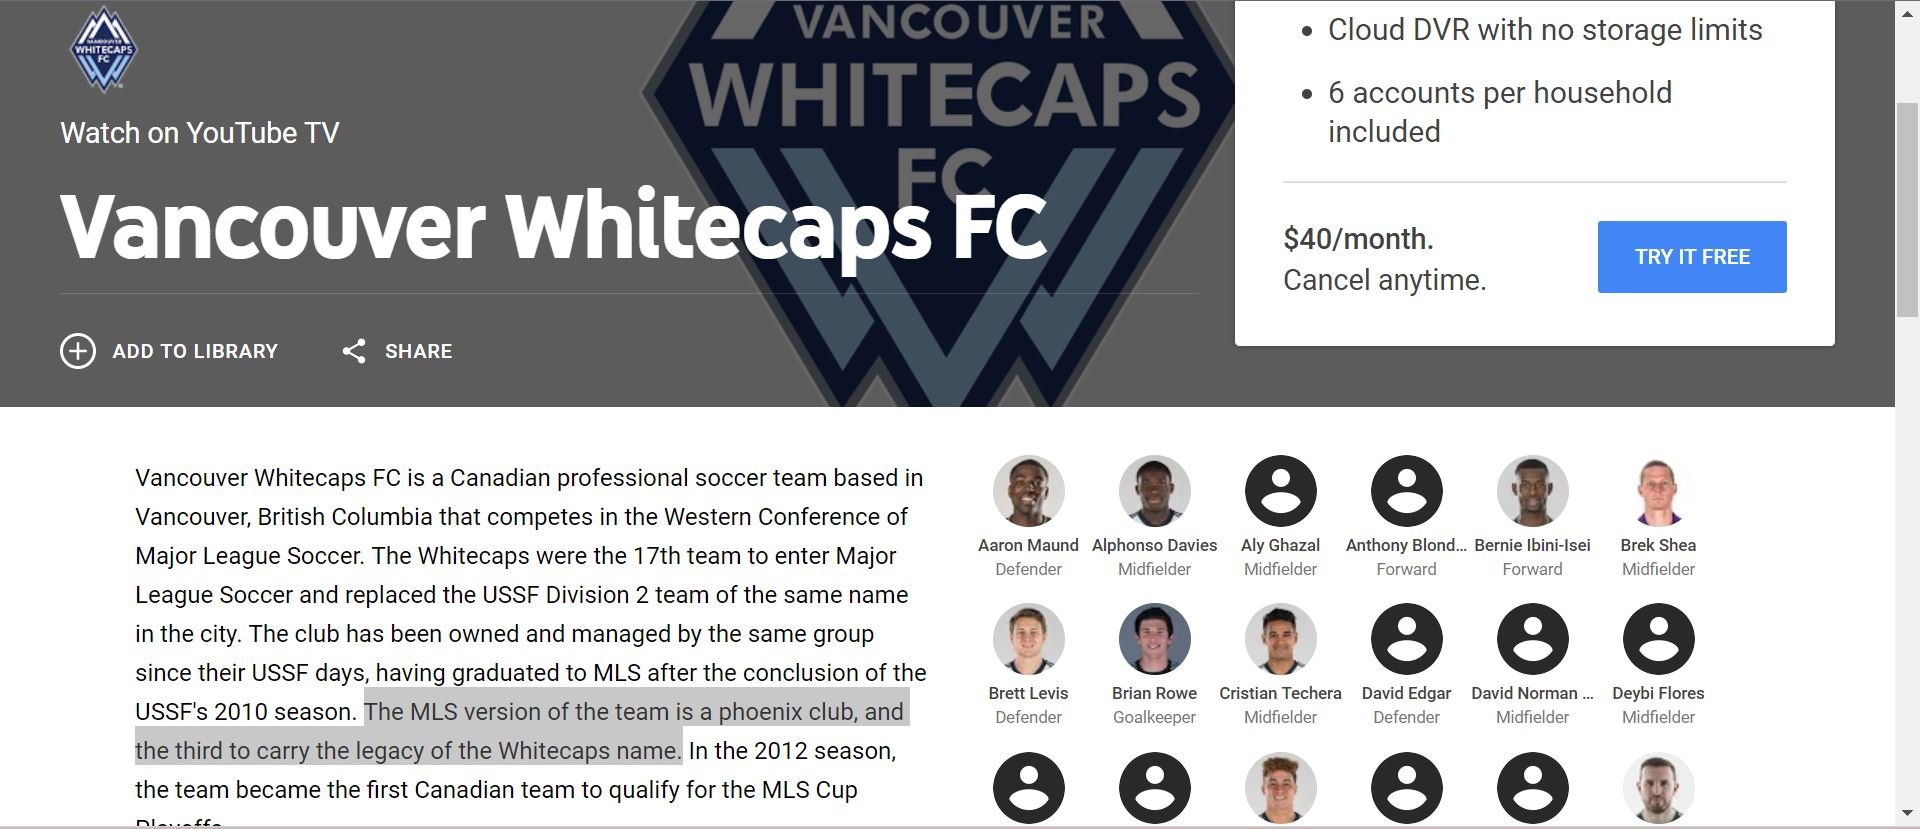 File:Whitecaps FC YouTube TV page jpg - Wikimedia Commons